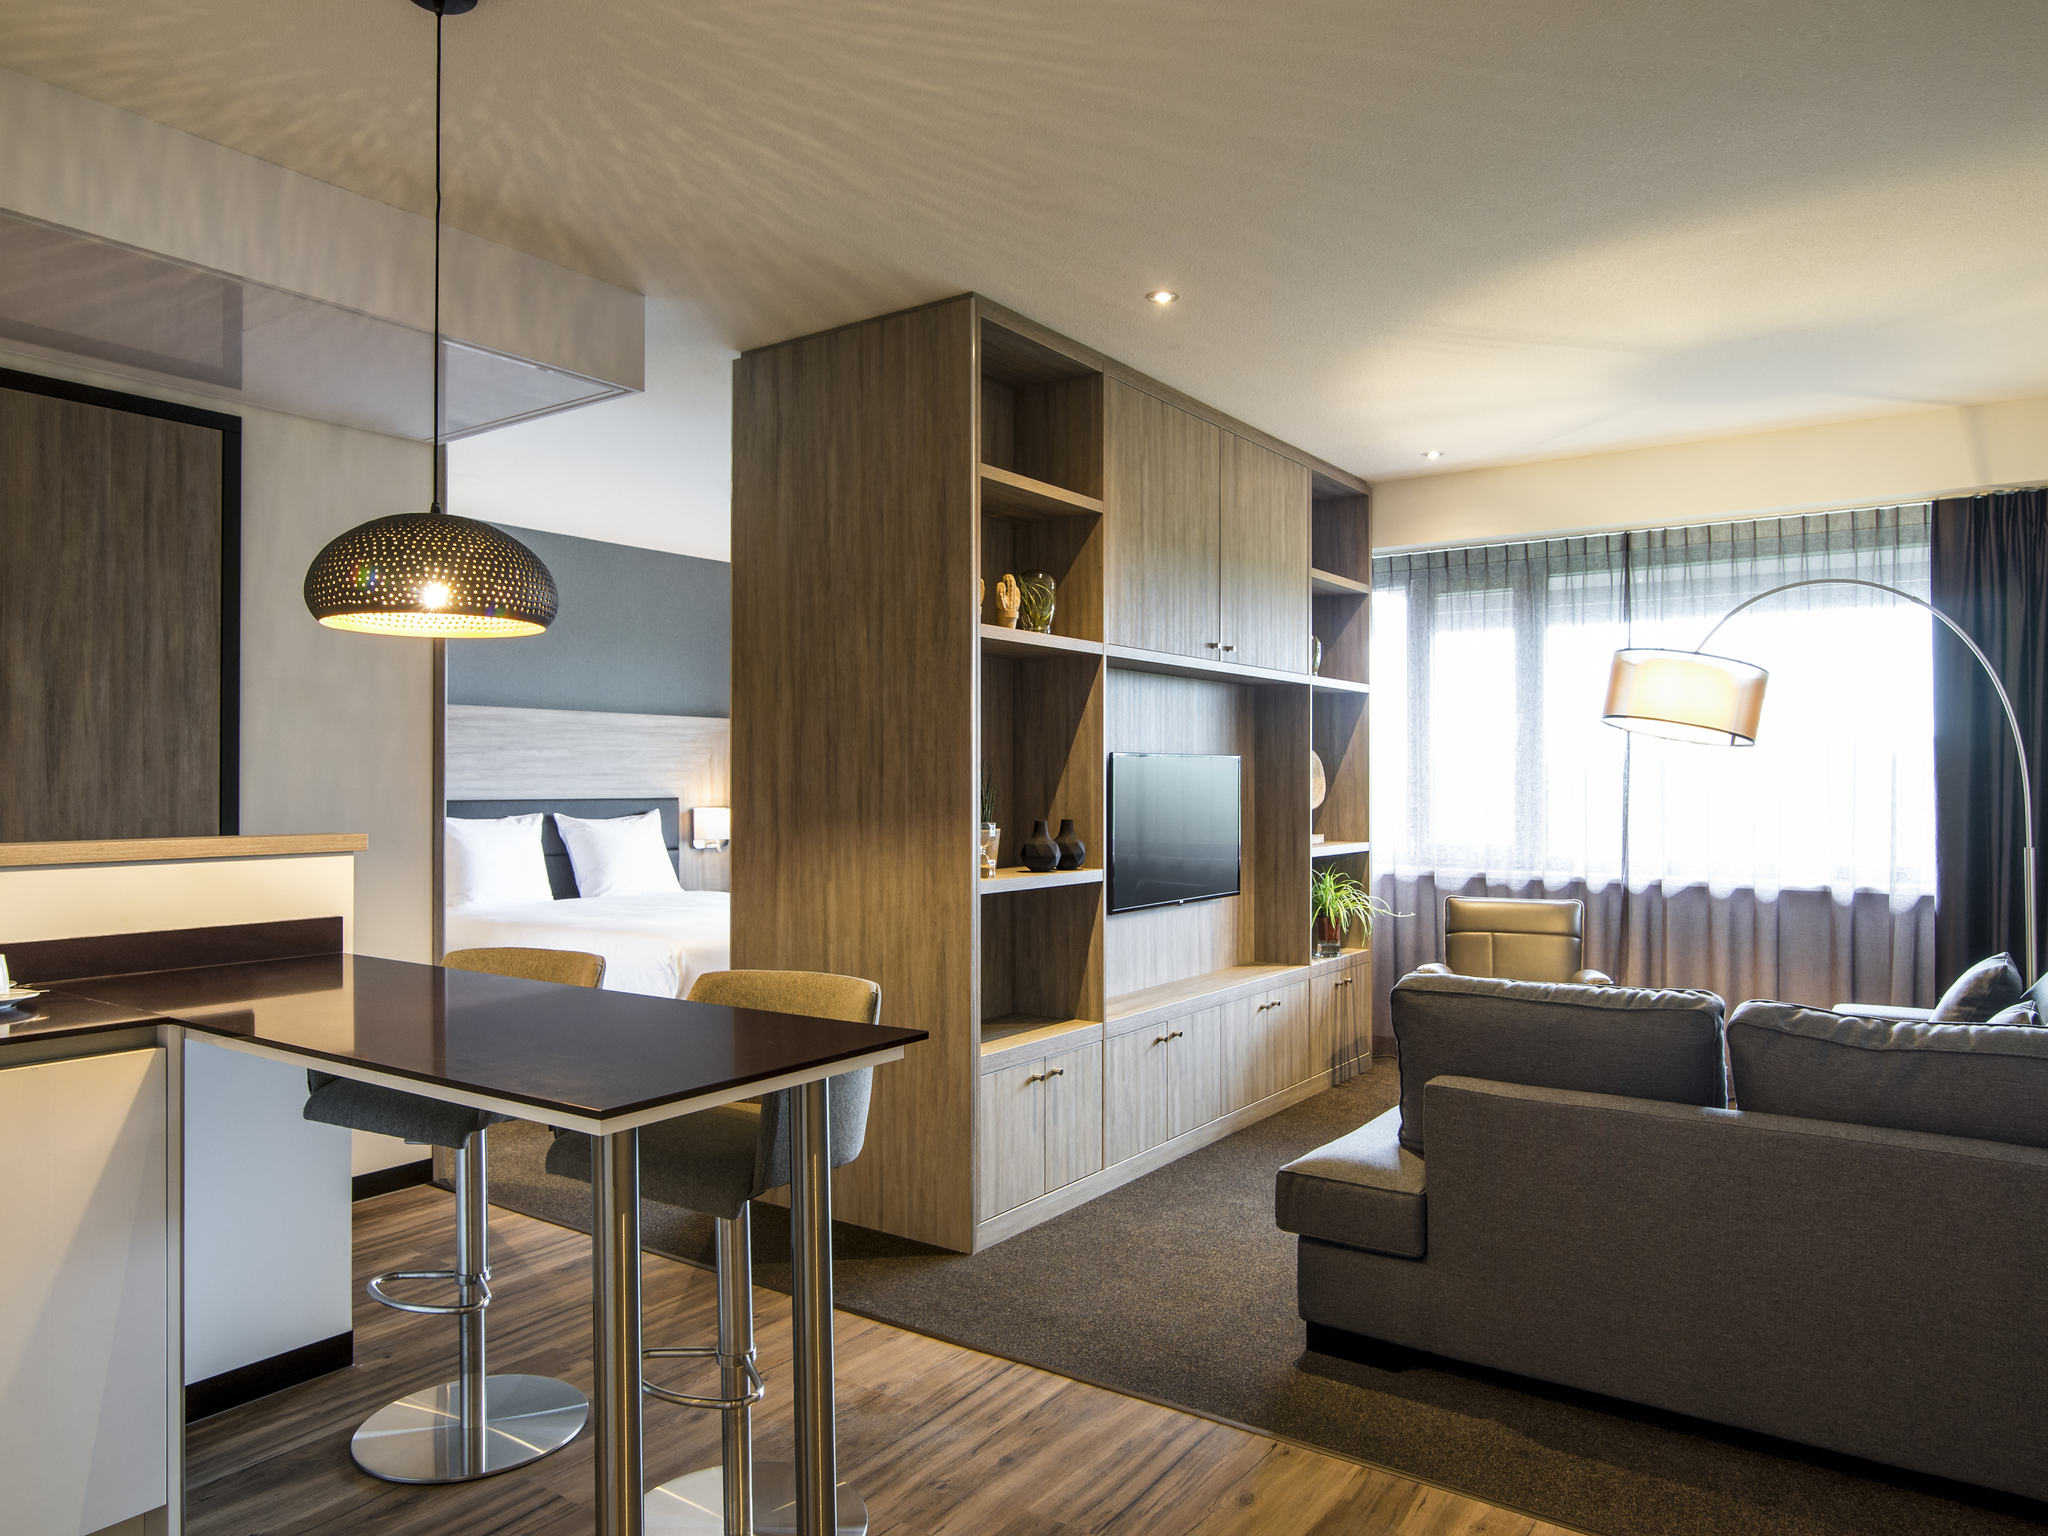 Hotel – Adagio Amsterdam City South